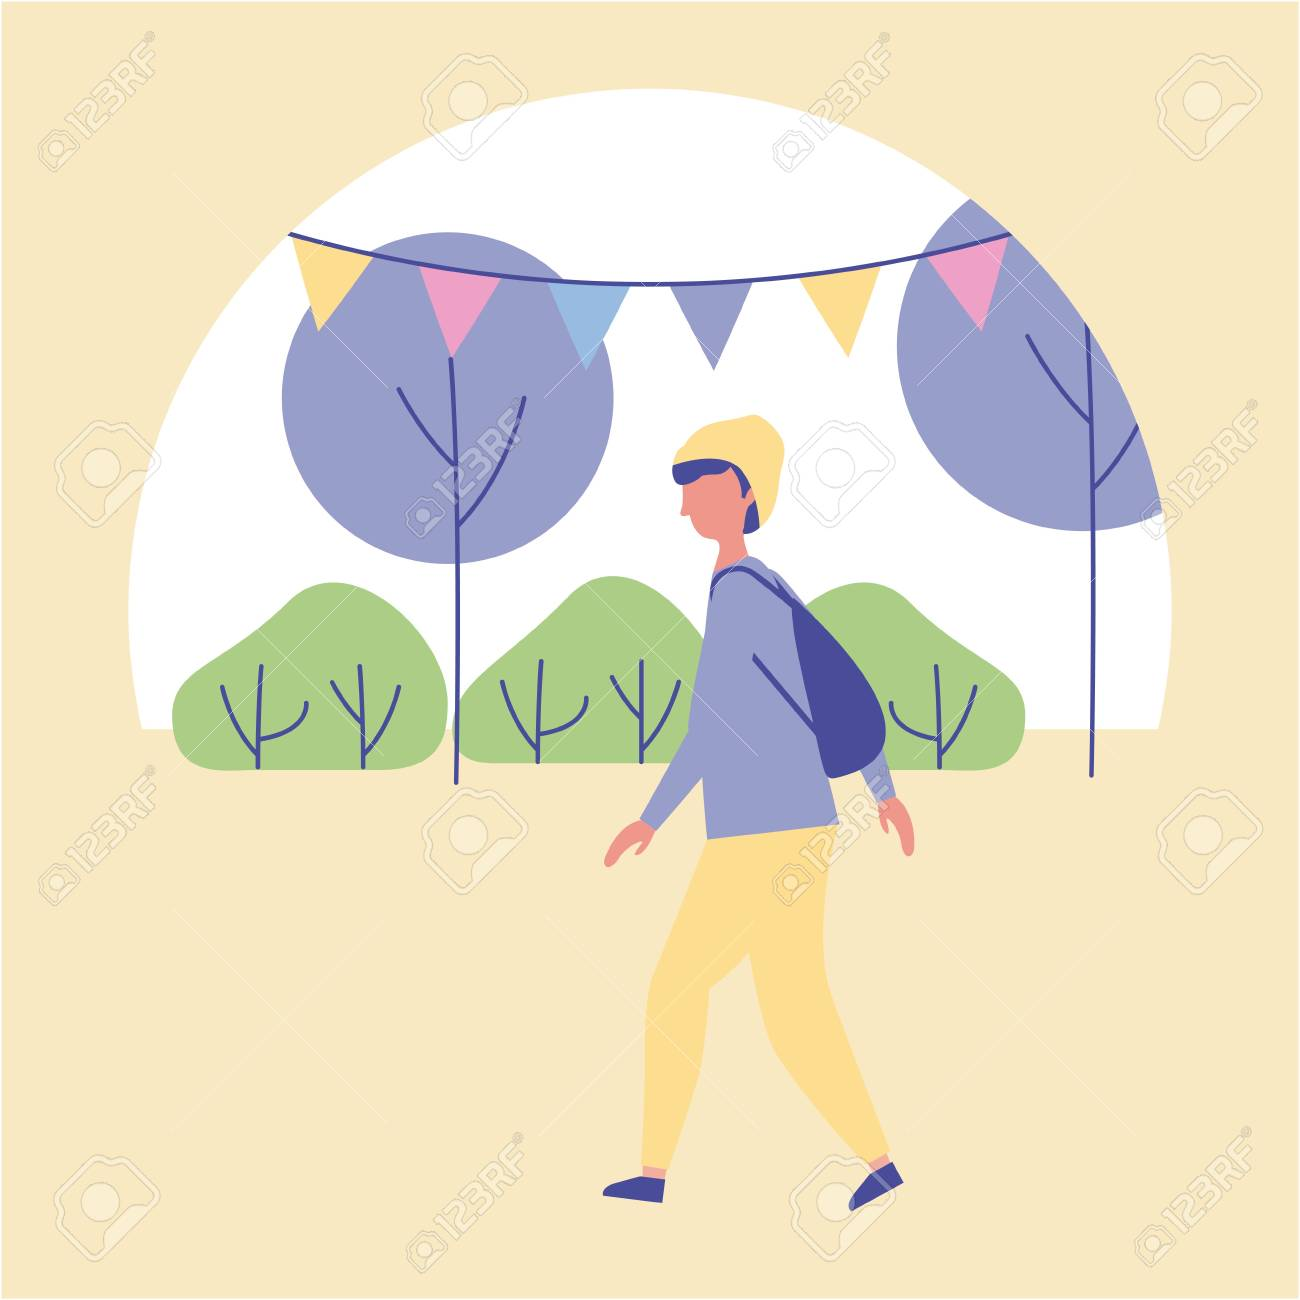 outdoor activities boy walking in the park trees and pennants vector illustration - 109952123